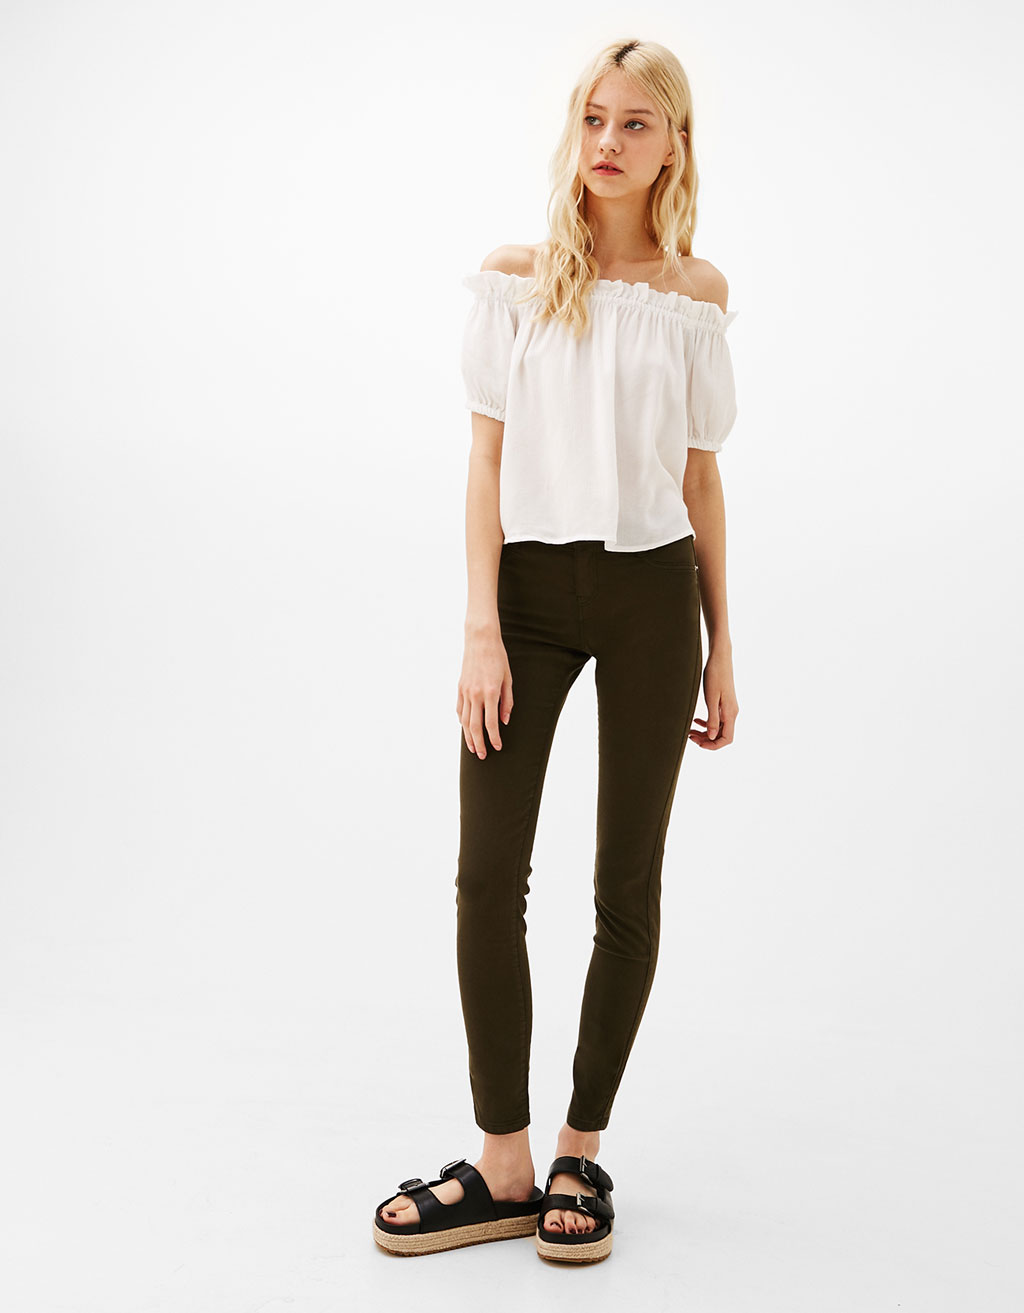 Low rise high elasticity jeggings